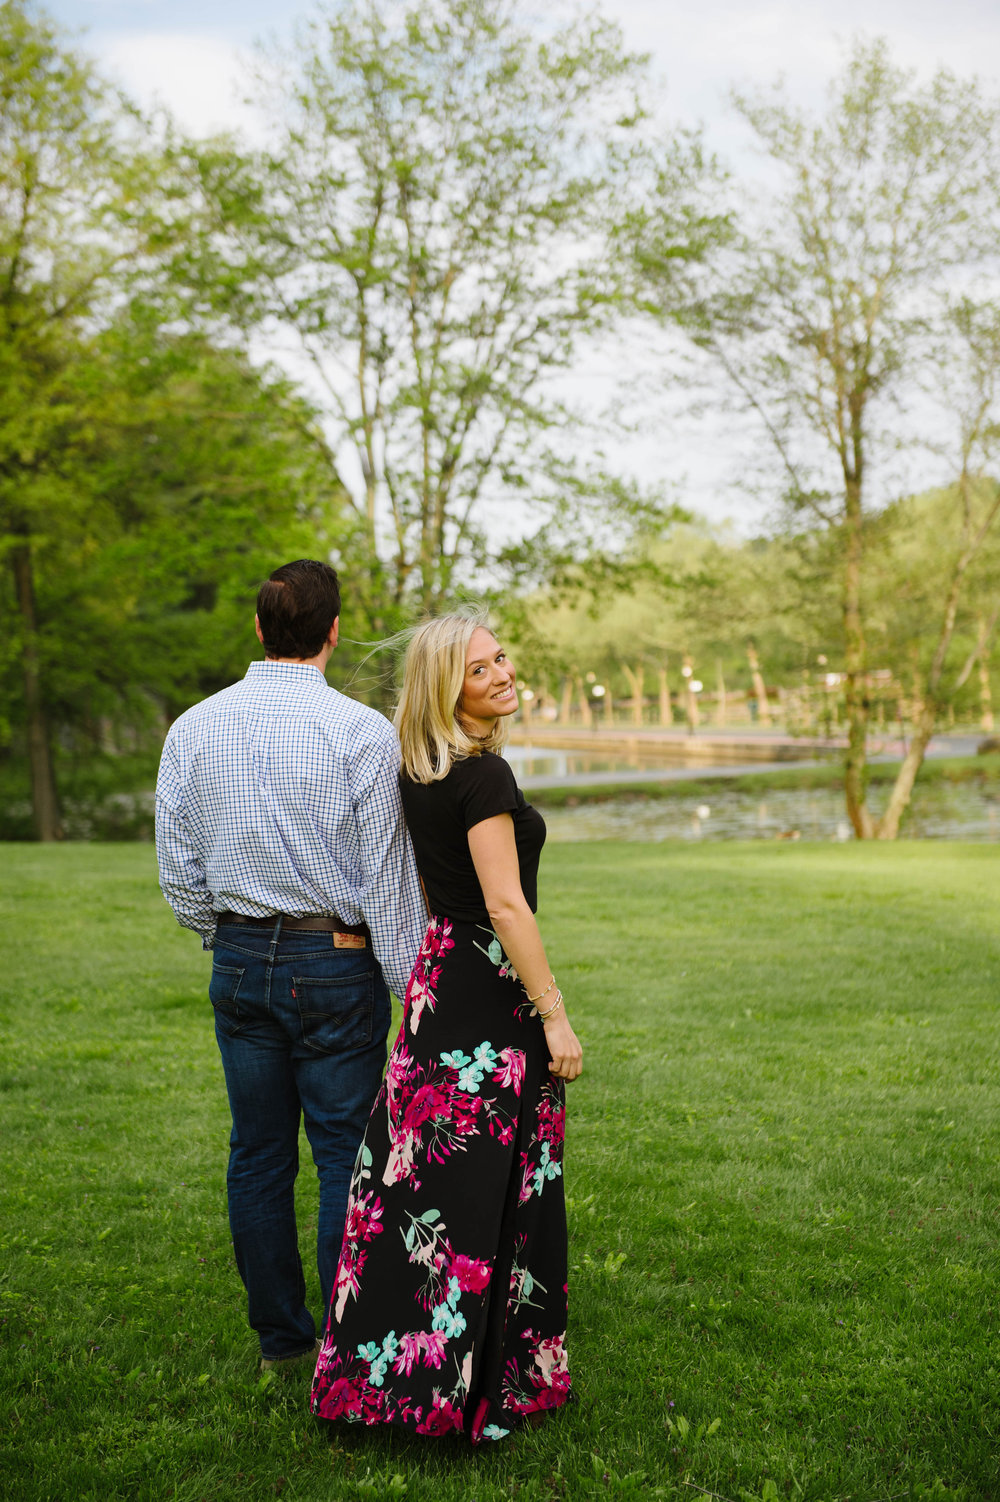 EMILY + NICK, FOREST PARK, SPRINGFIELD